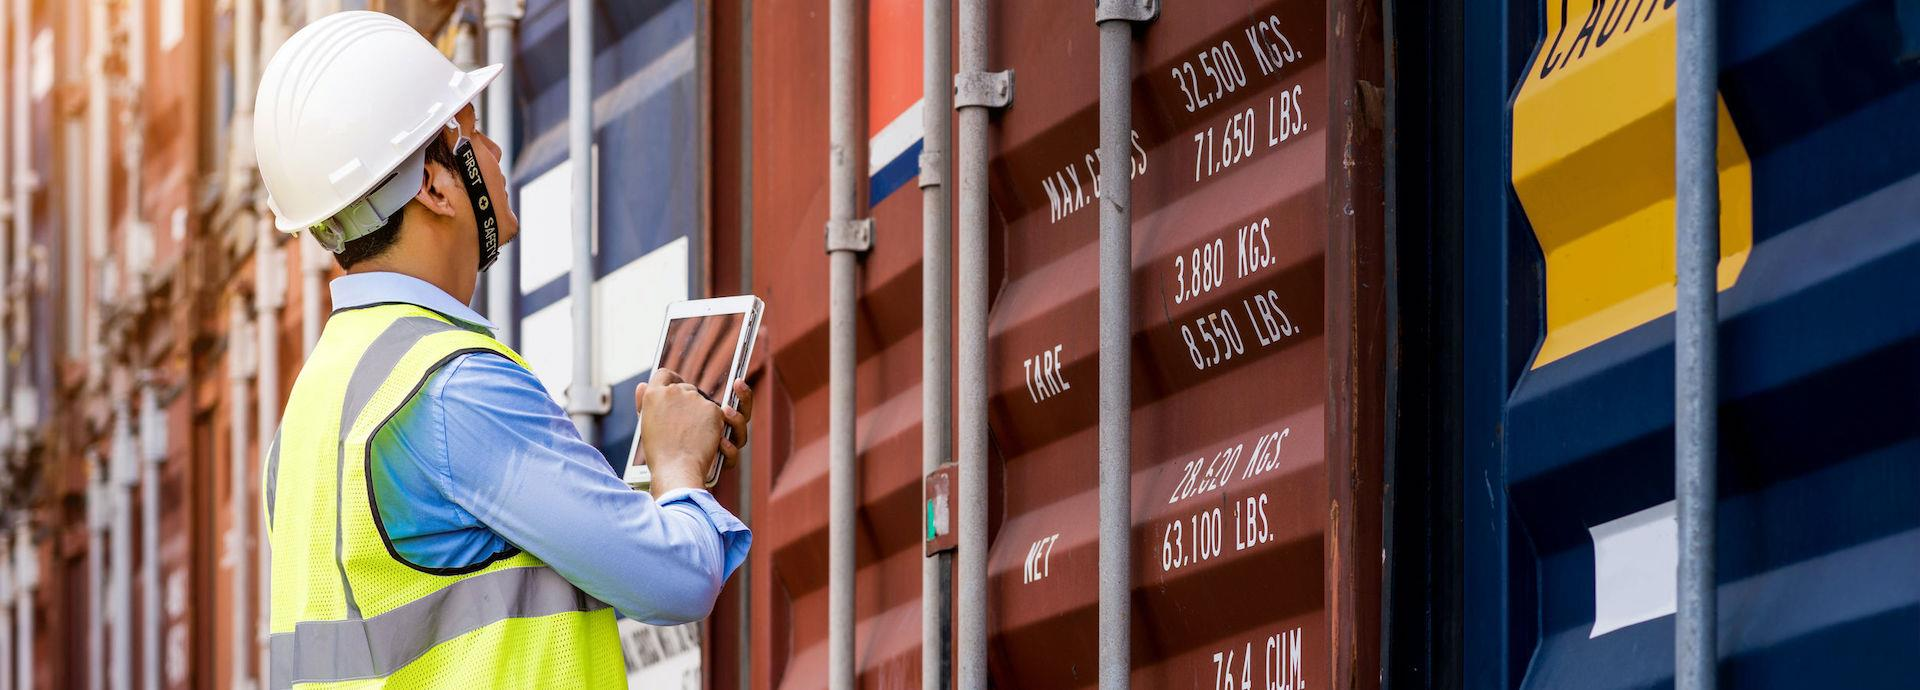 Workman tracking shipping containers